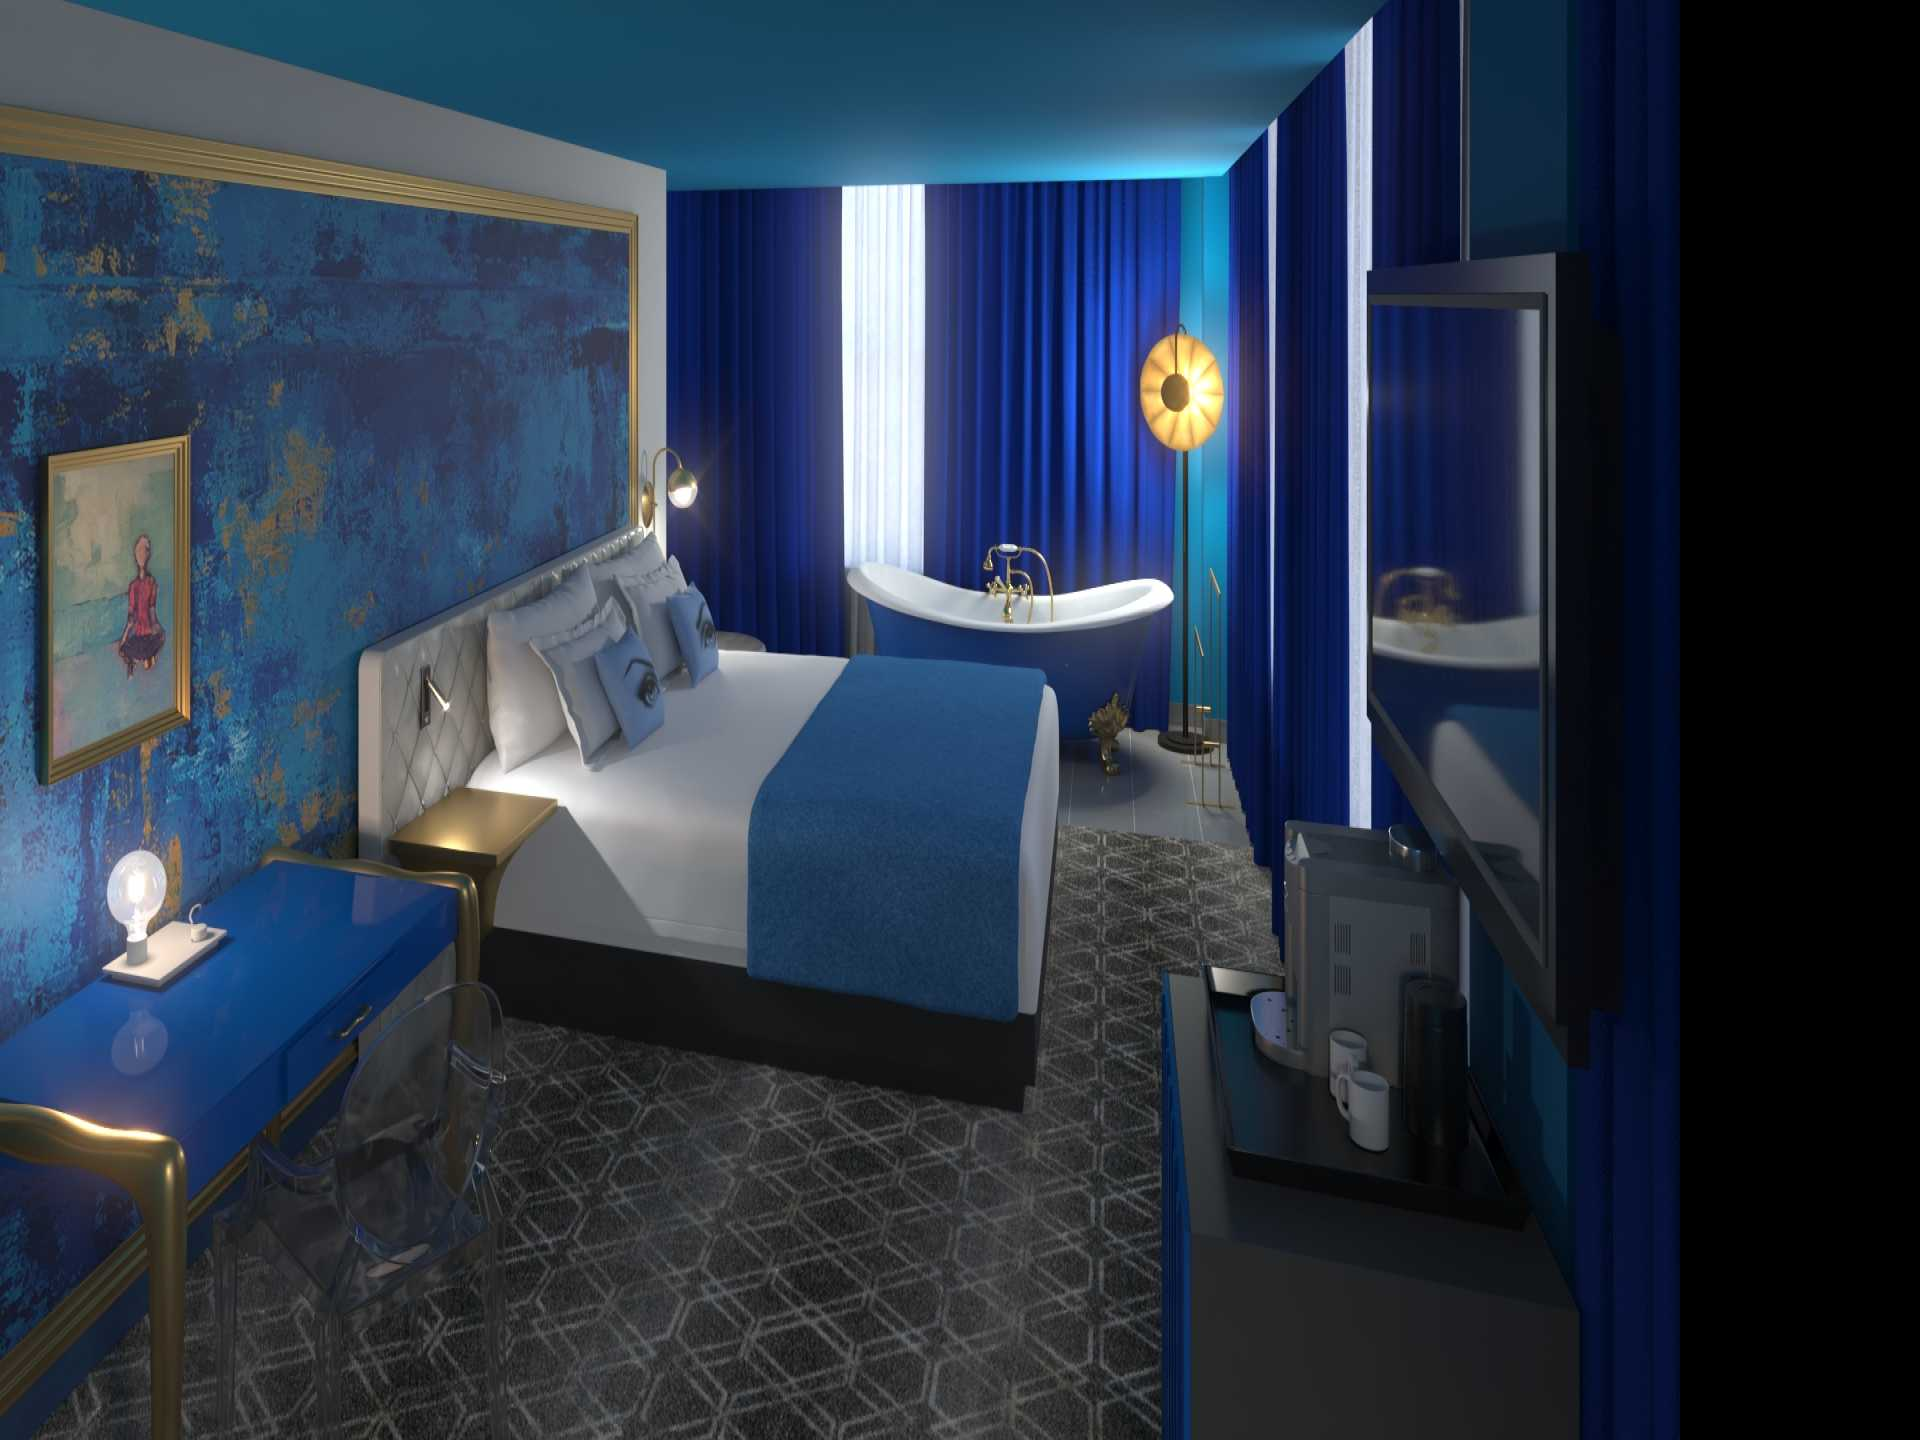 First Look: St. Louis's Angad Arts Hotel